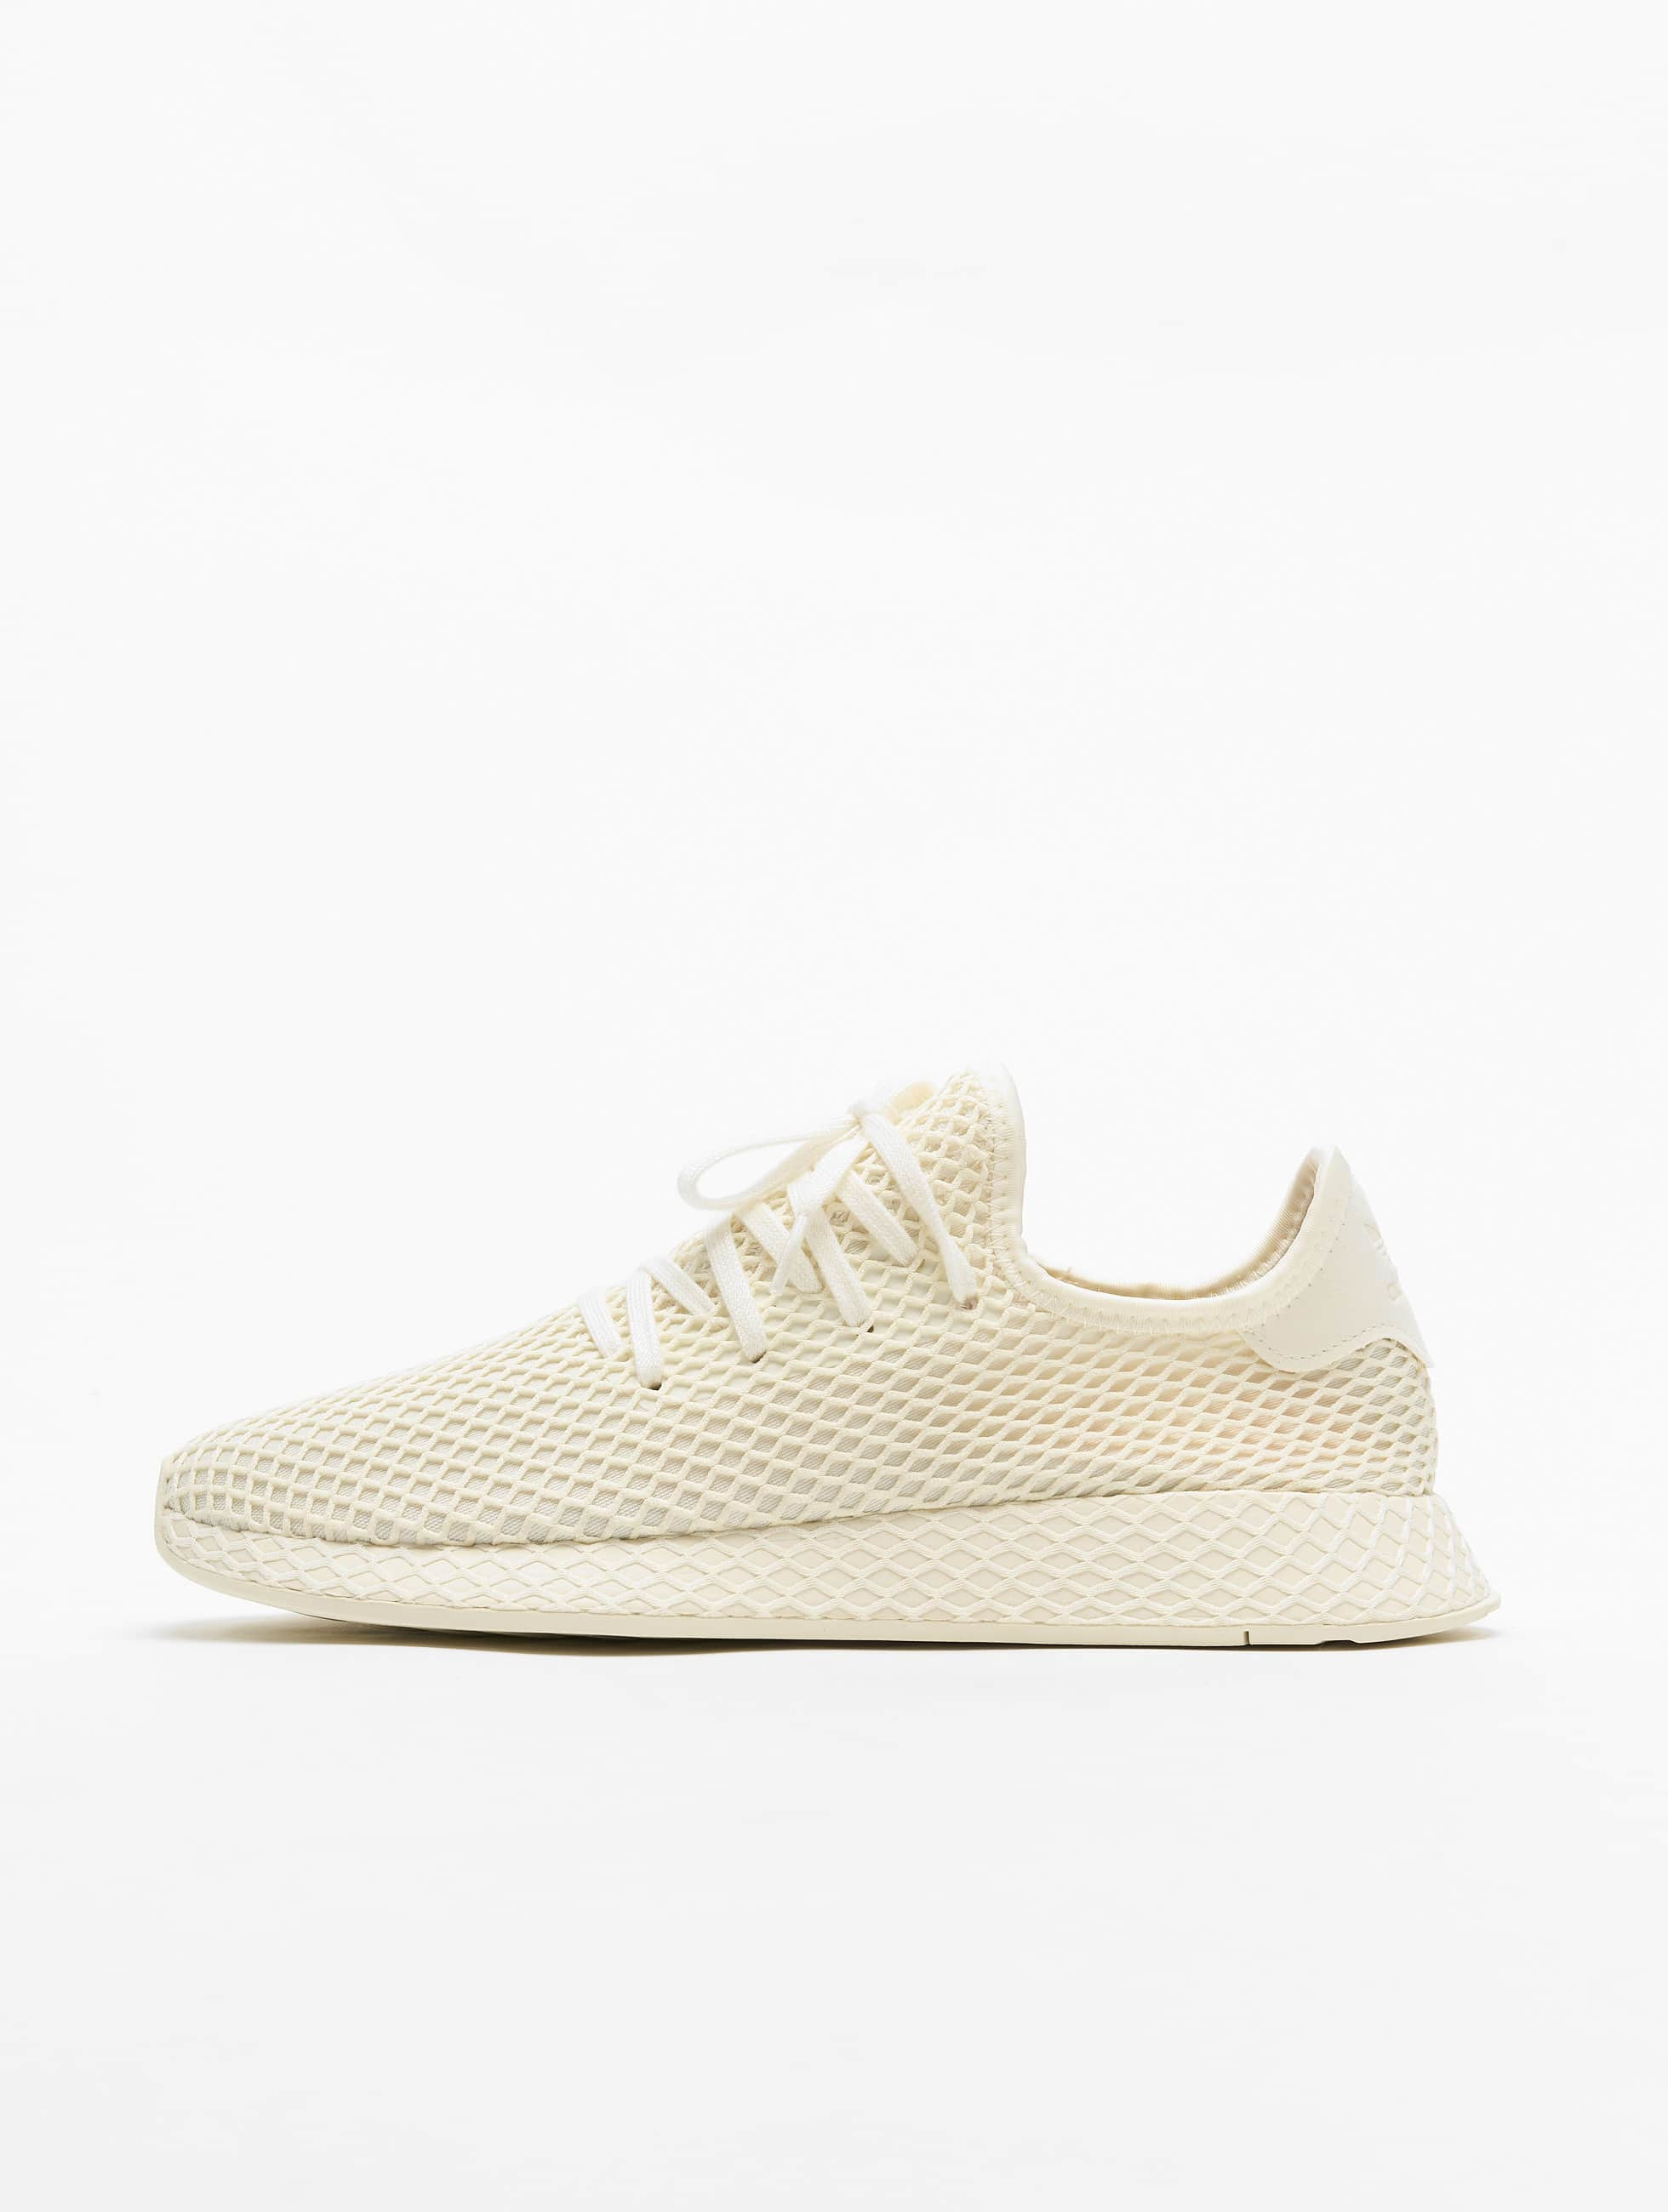 Adidas Originals Deerupt Runner Sneakers Off WhiteFtw WhiteShow Red